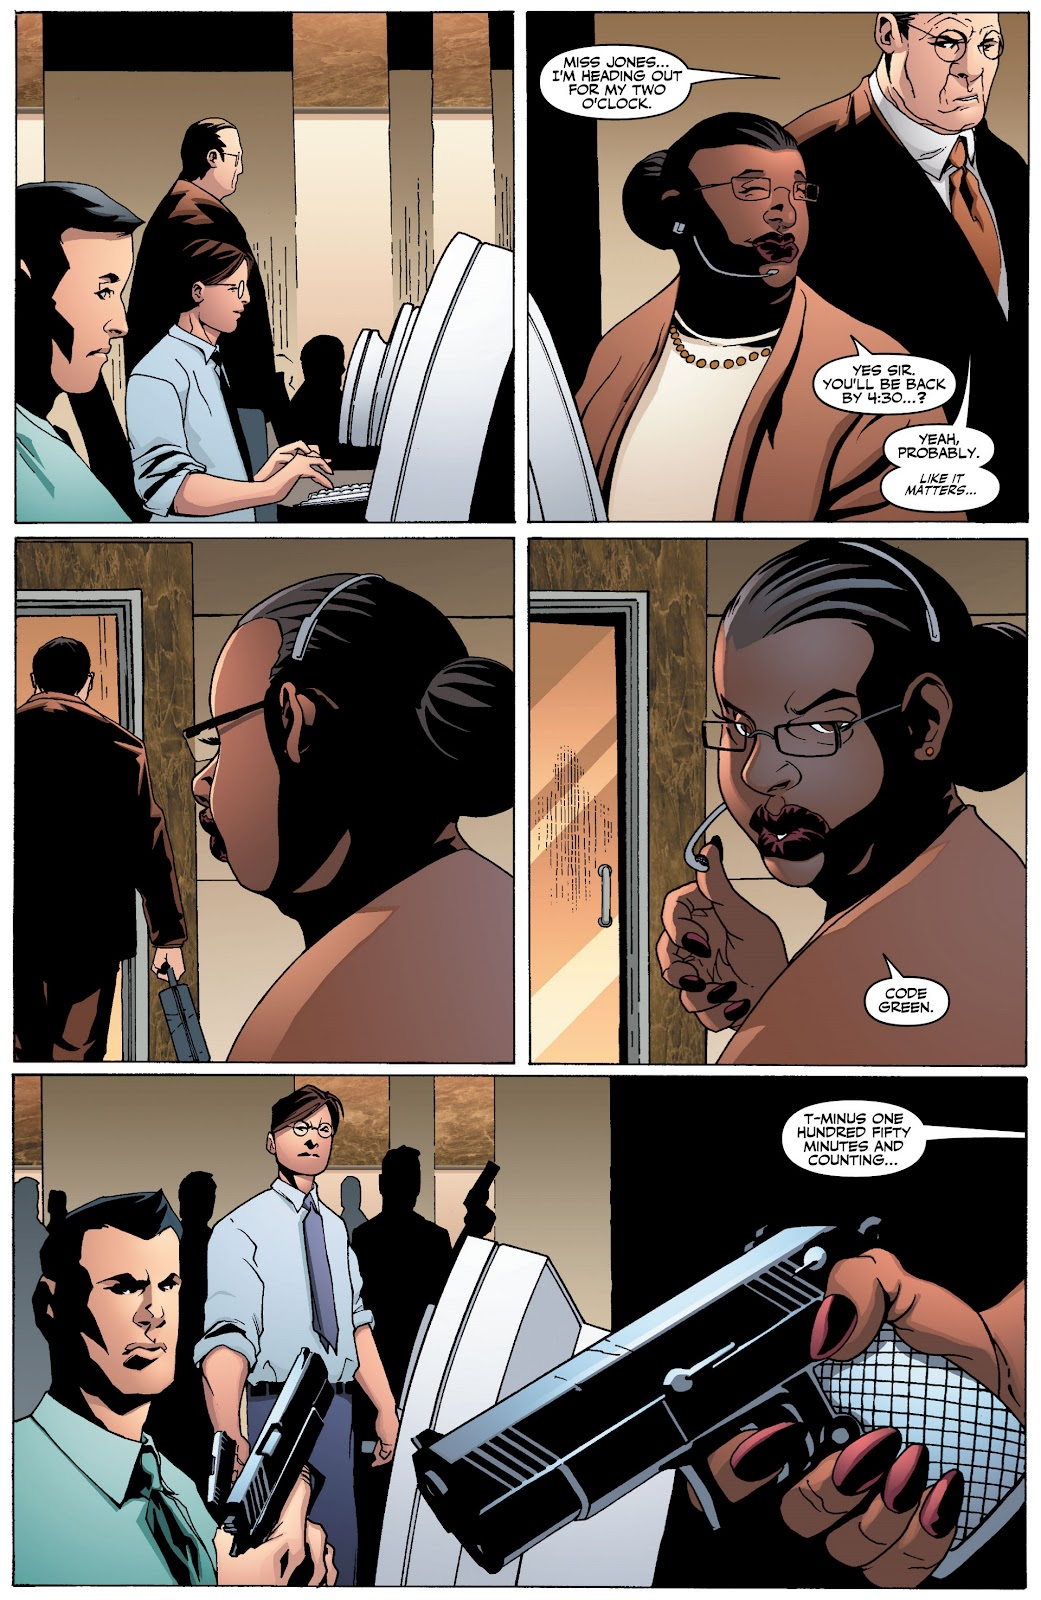 Wildcats Version 3.0 Issue #11 #11 - English 3